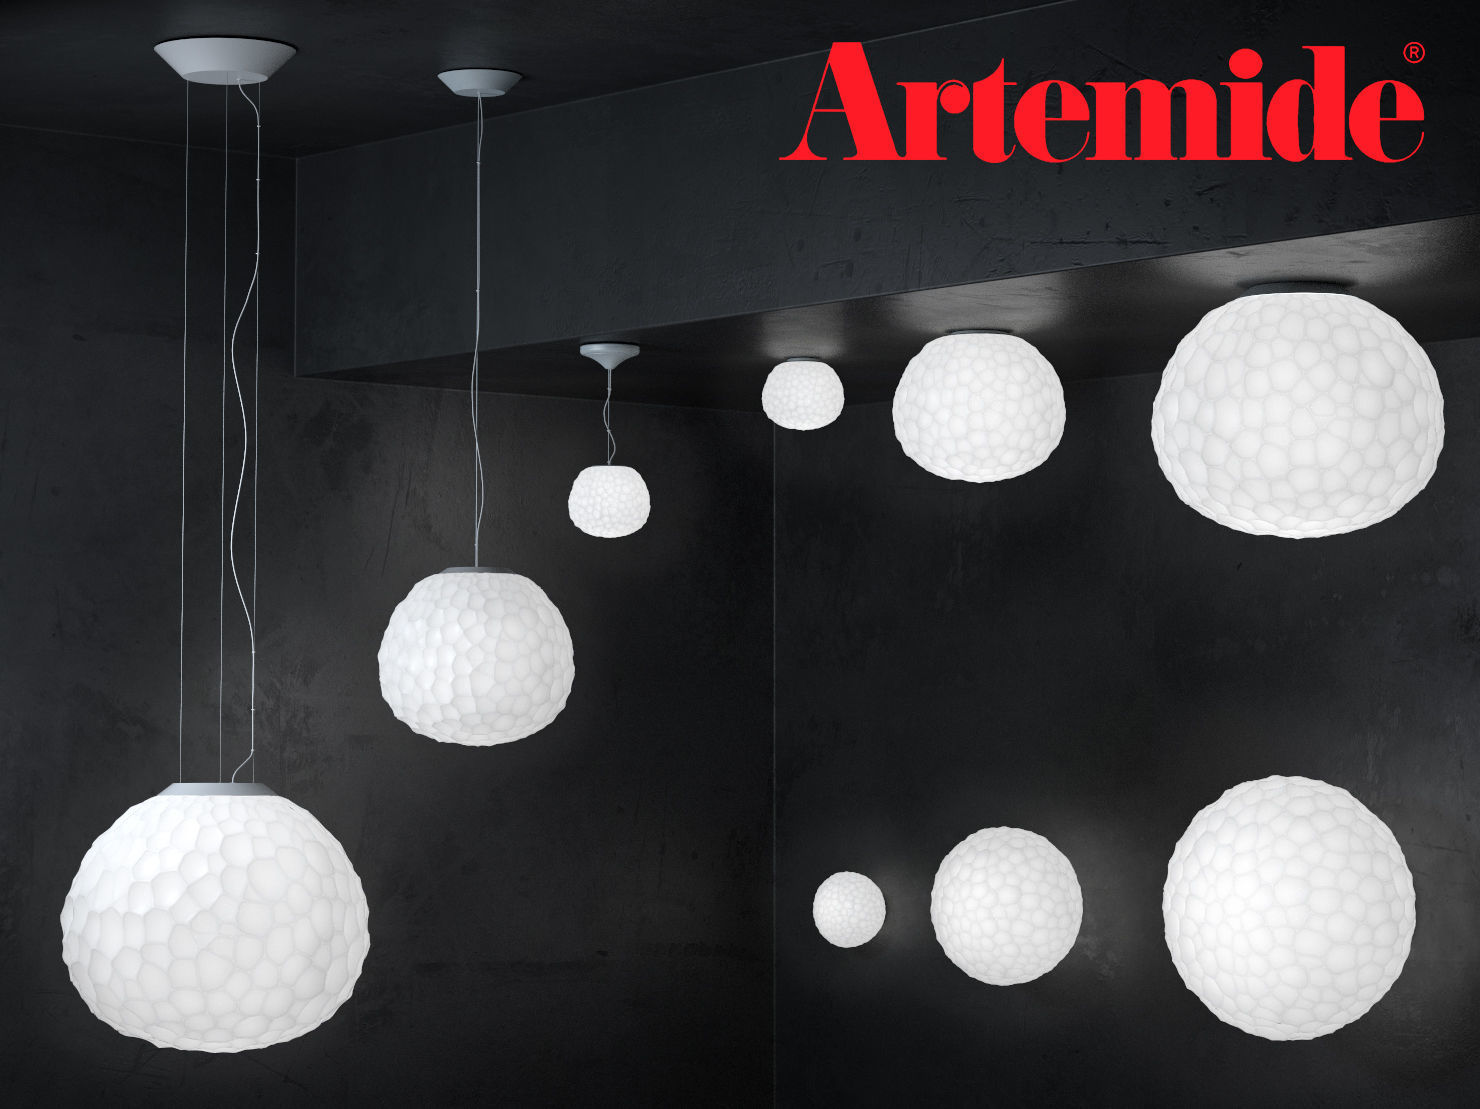 Artemide Suspension Meteorite By Artemide Suspension And Wall 3d Model